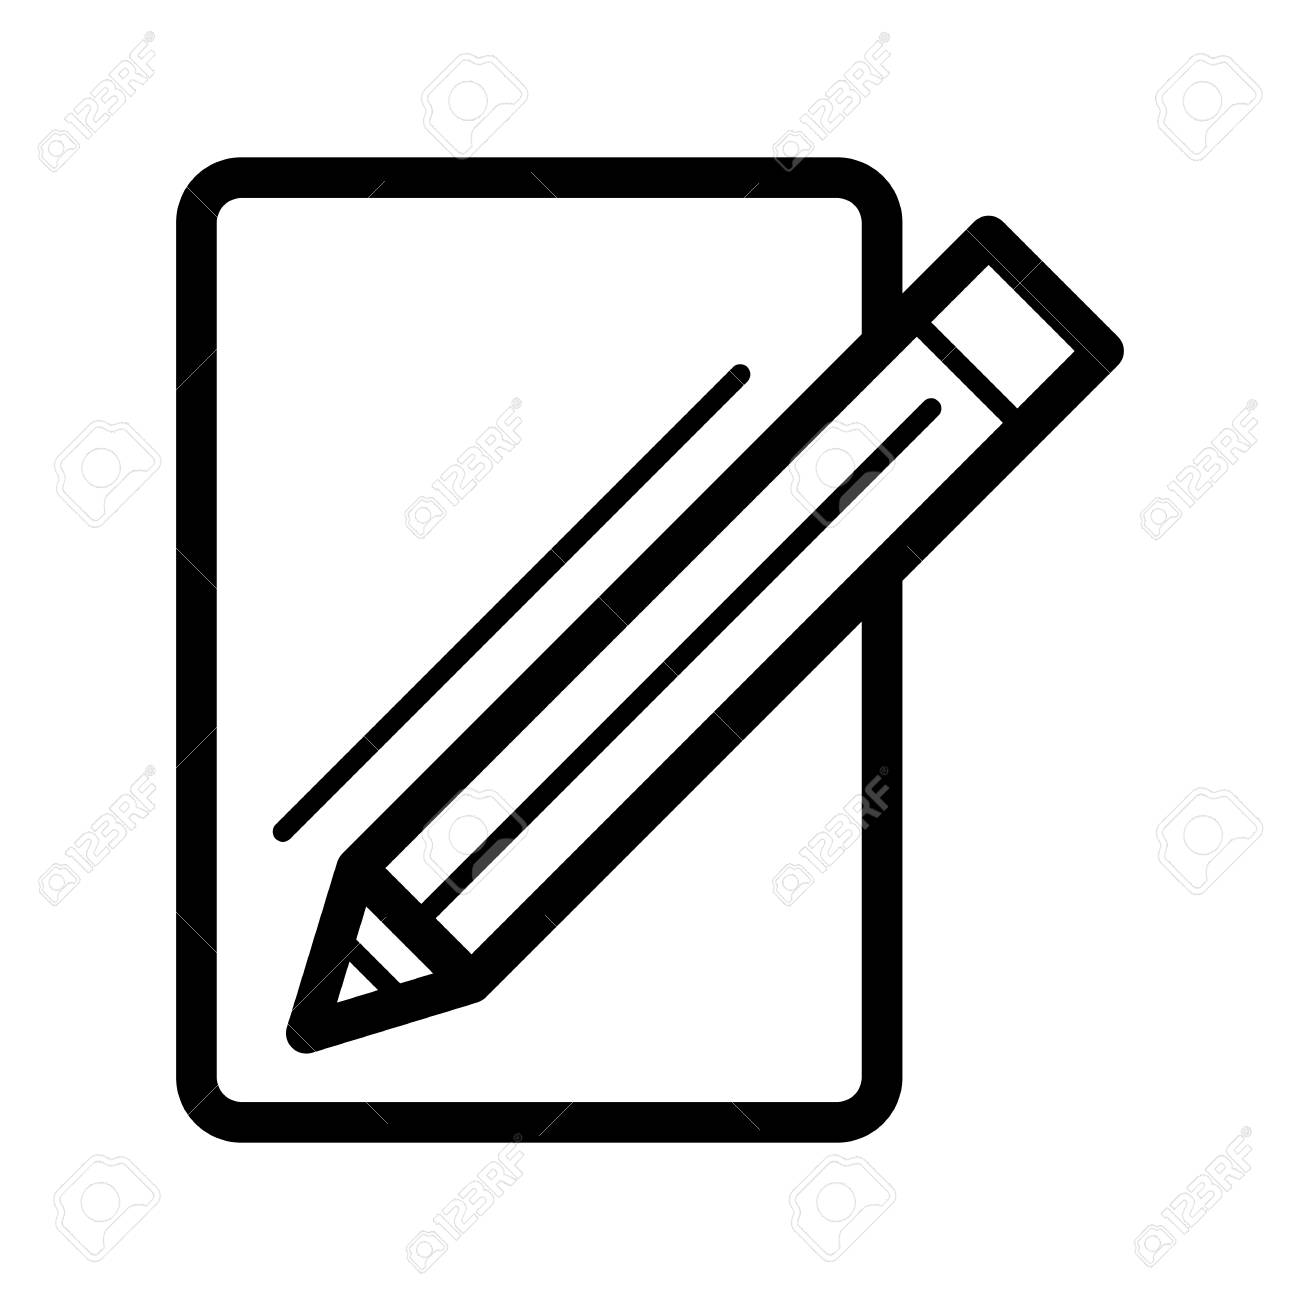 blank paper and a pencil vector icon. black and white illustration